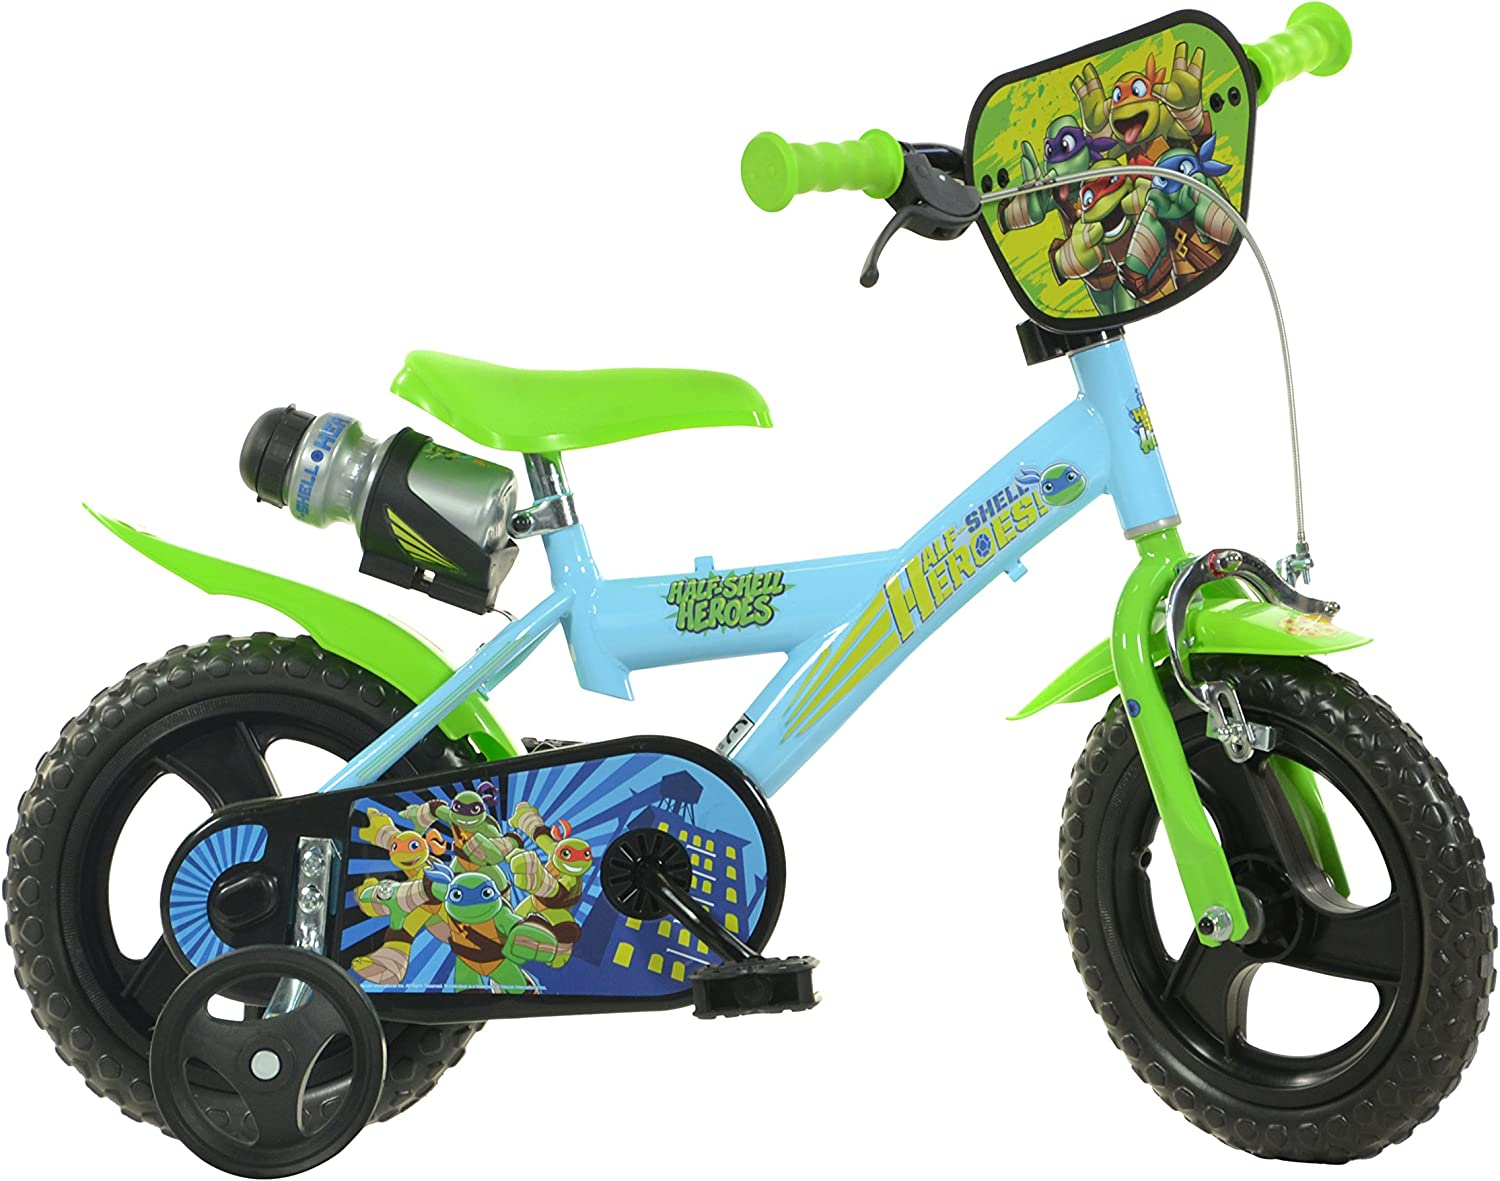 Dino Bikes 123GlHsh 12Inch Half Shell Heroes Bicycle